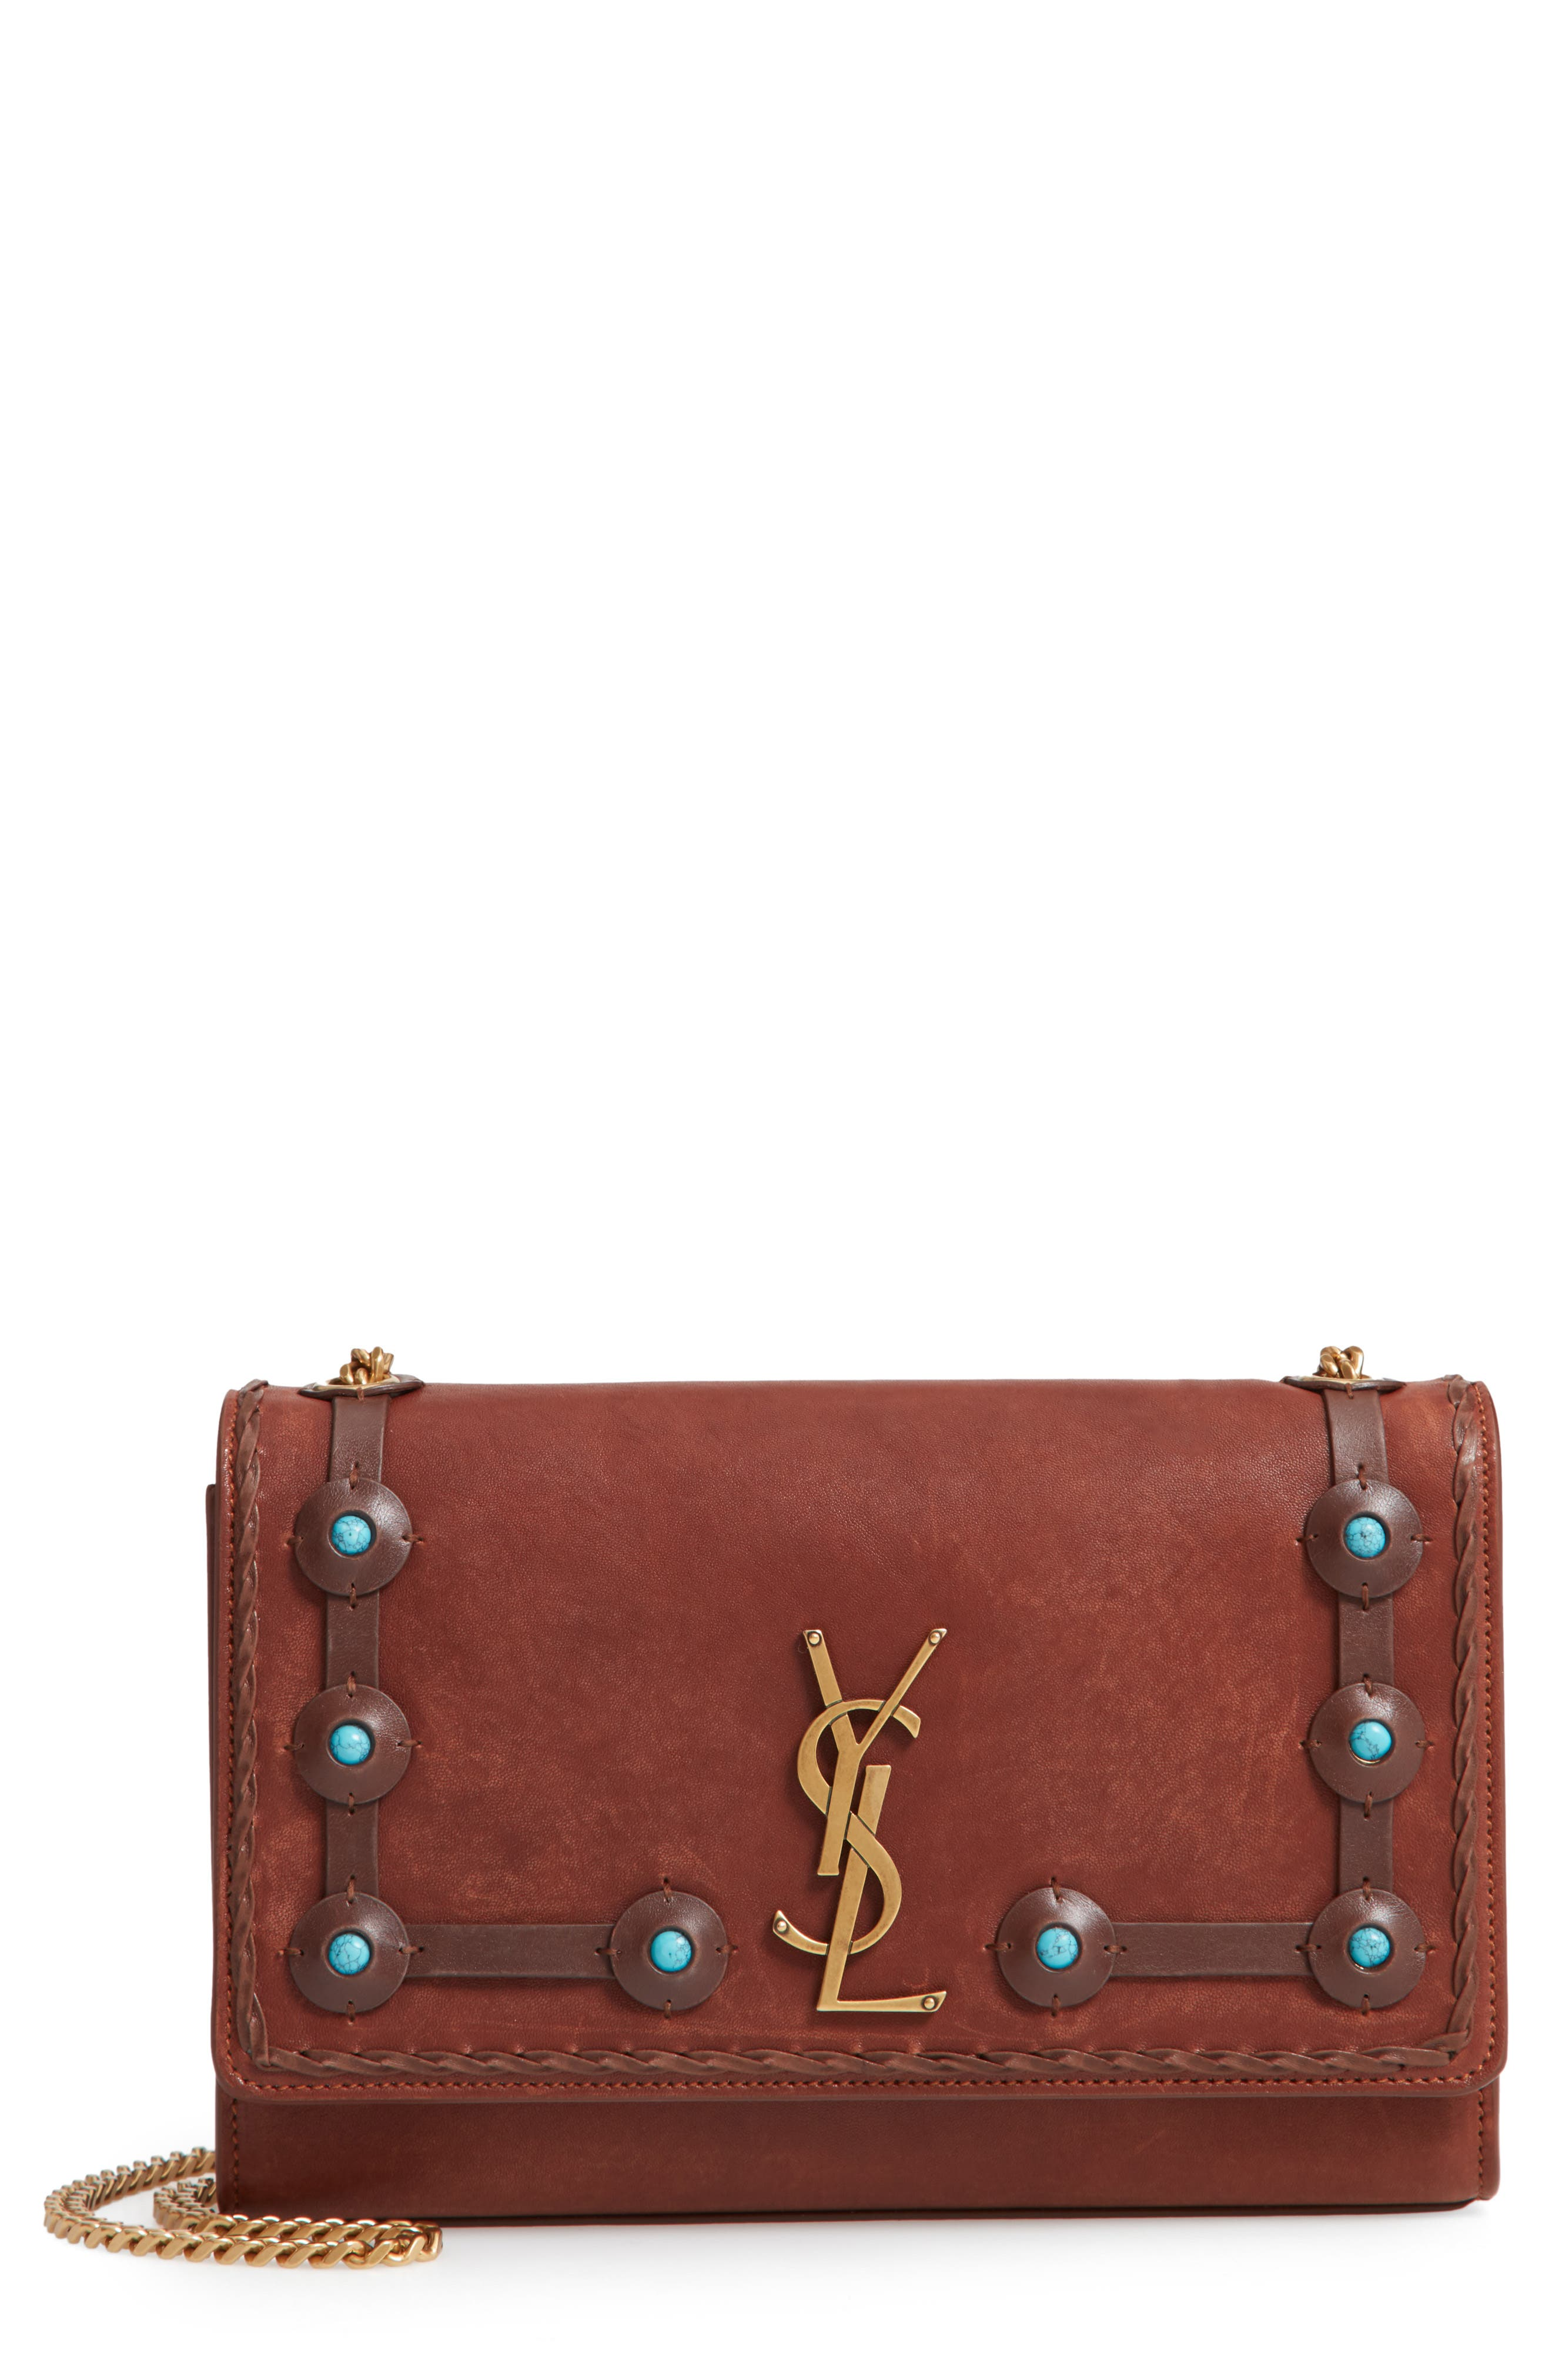 Medium Kate Studded Leather Crossbody Bag,                             Main thumbnail 1, color,                             BROWN MULTI